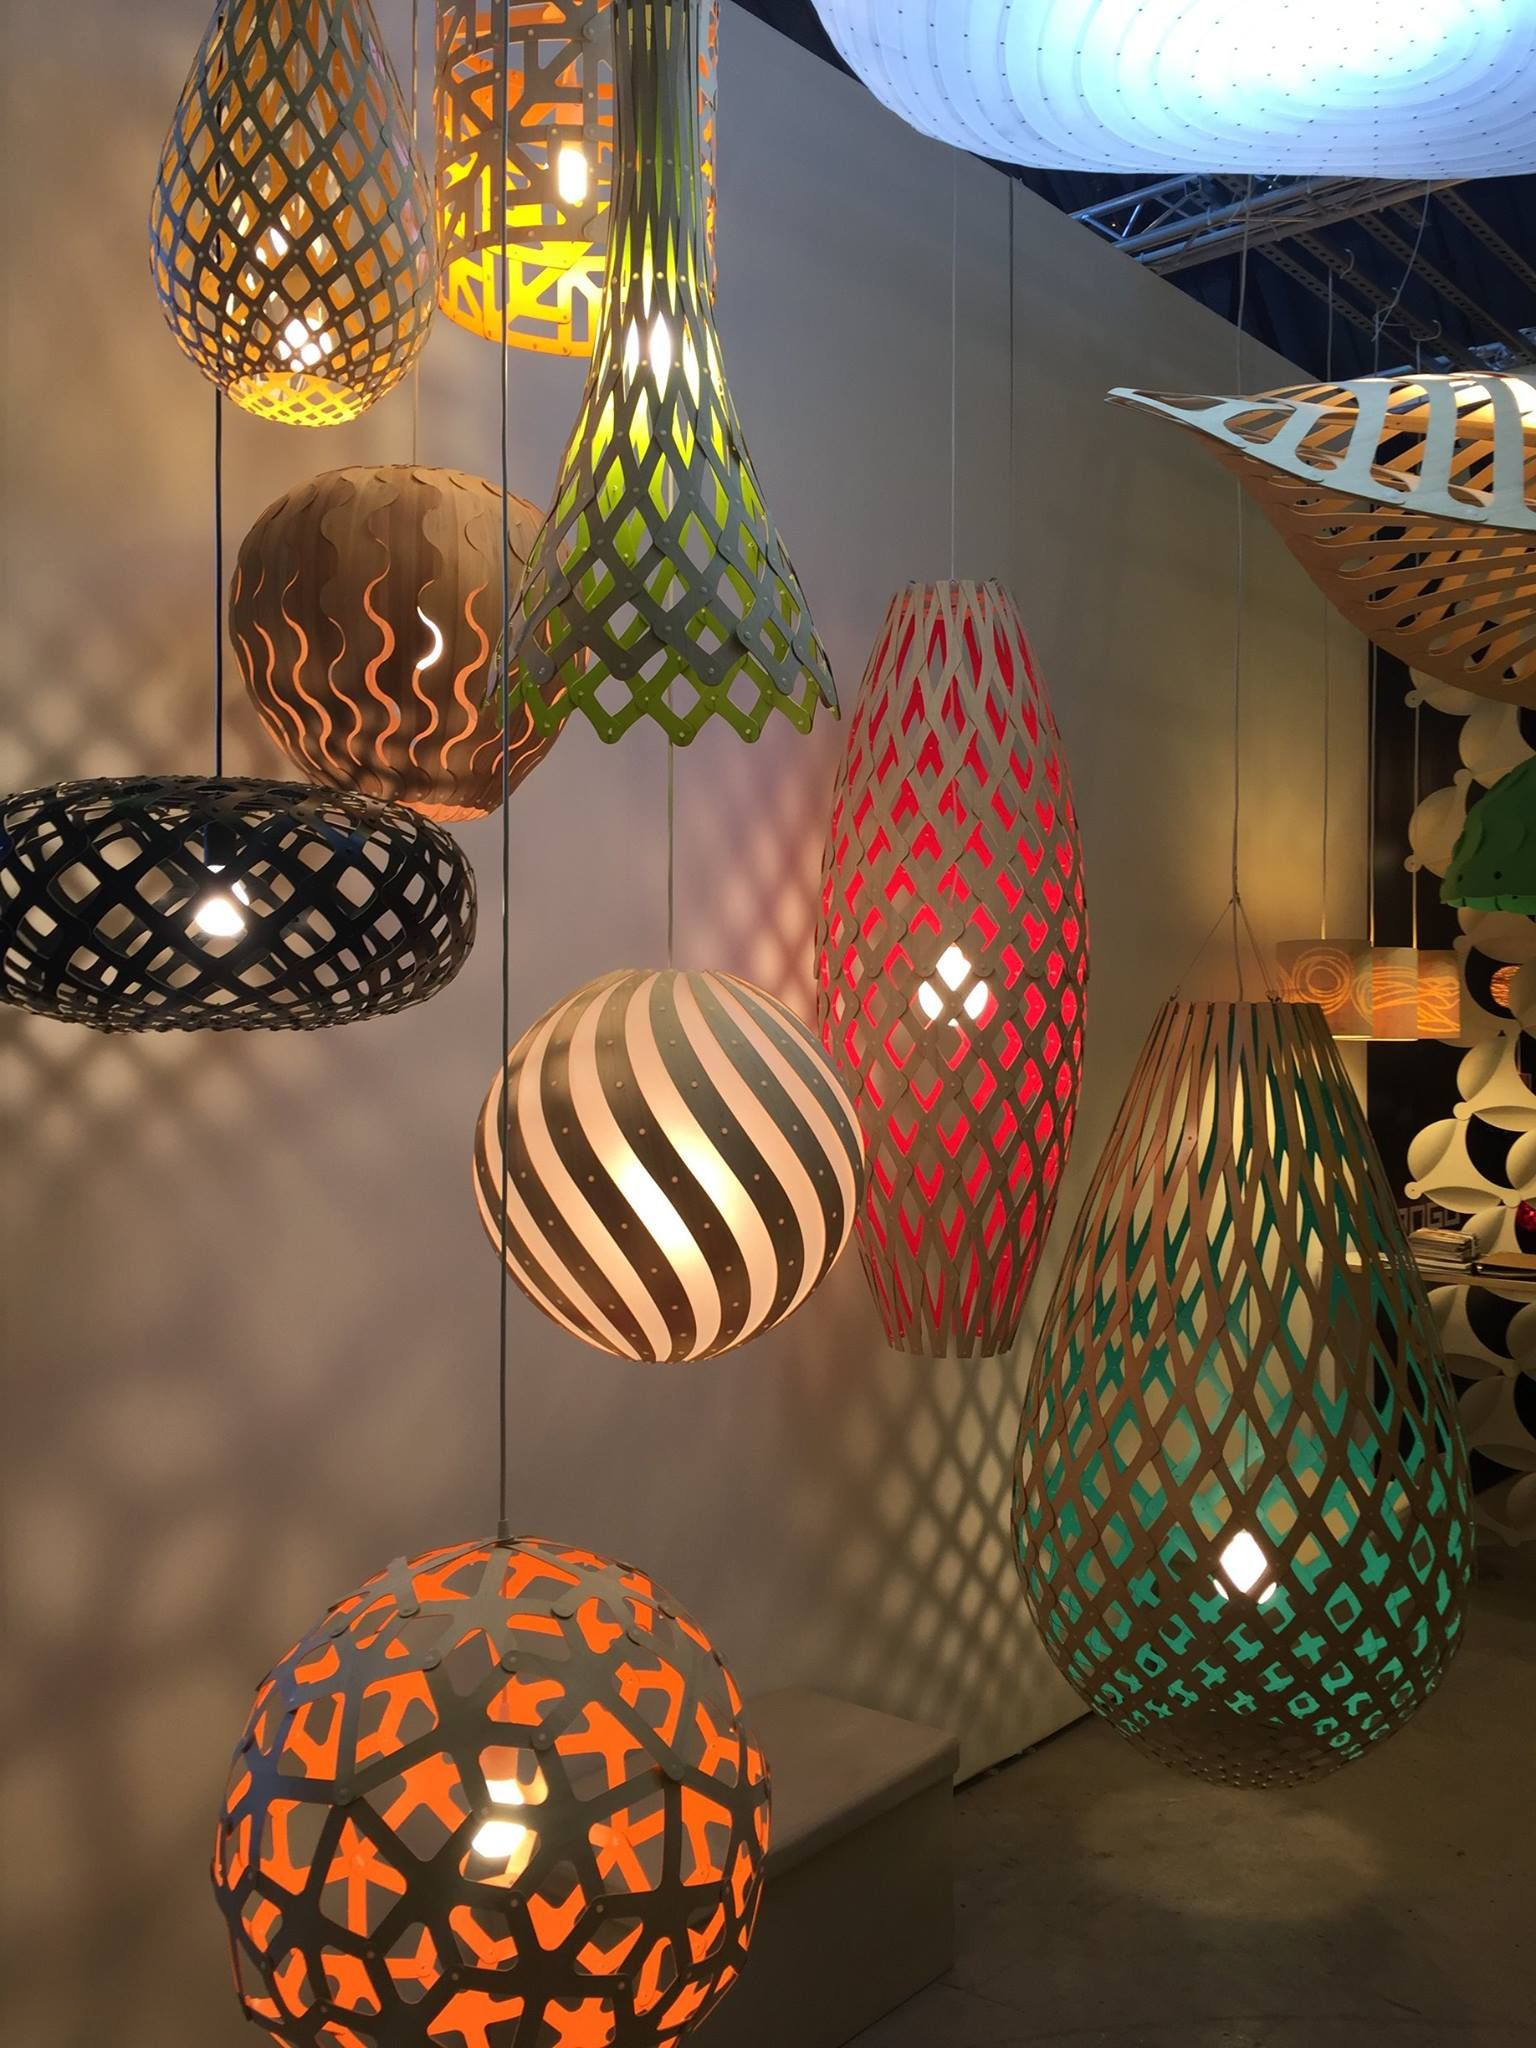 David Trubridge Pendant Lighting At BDNY Click Here On Where To - Where to buy pendant lights